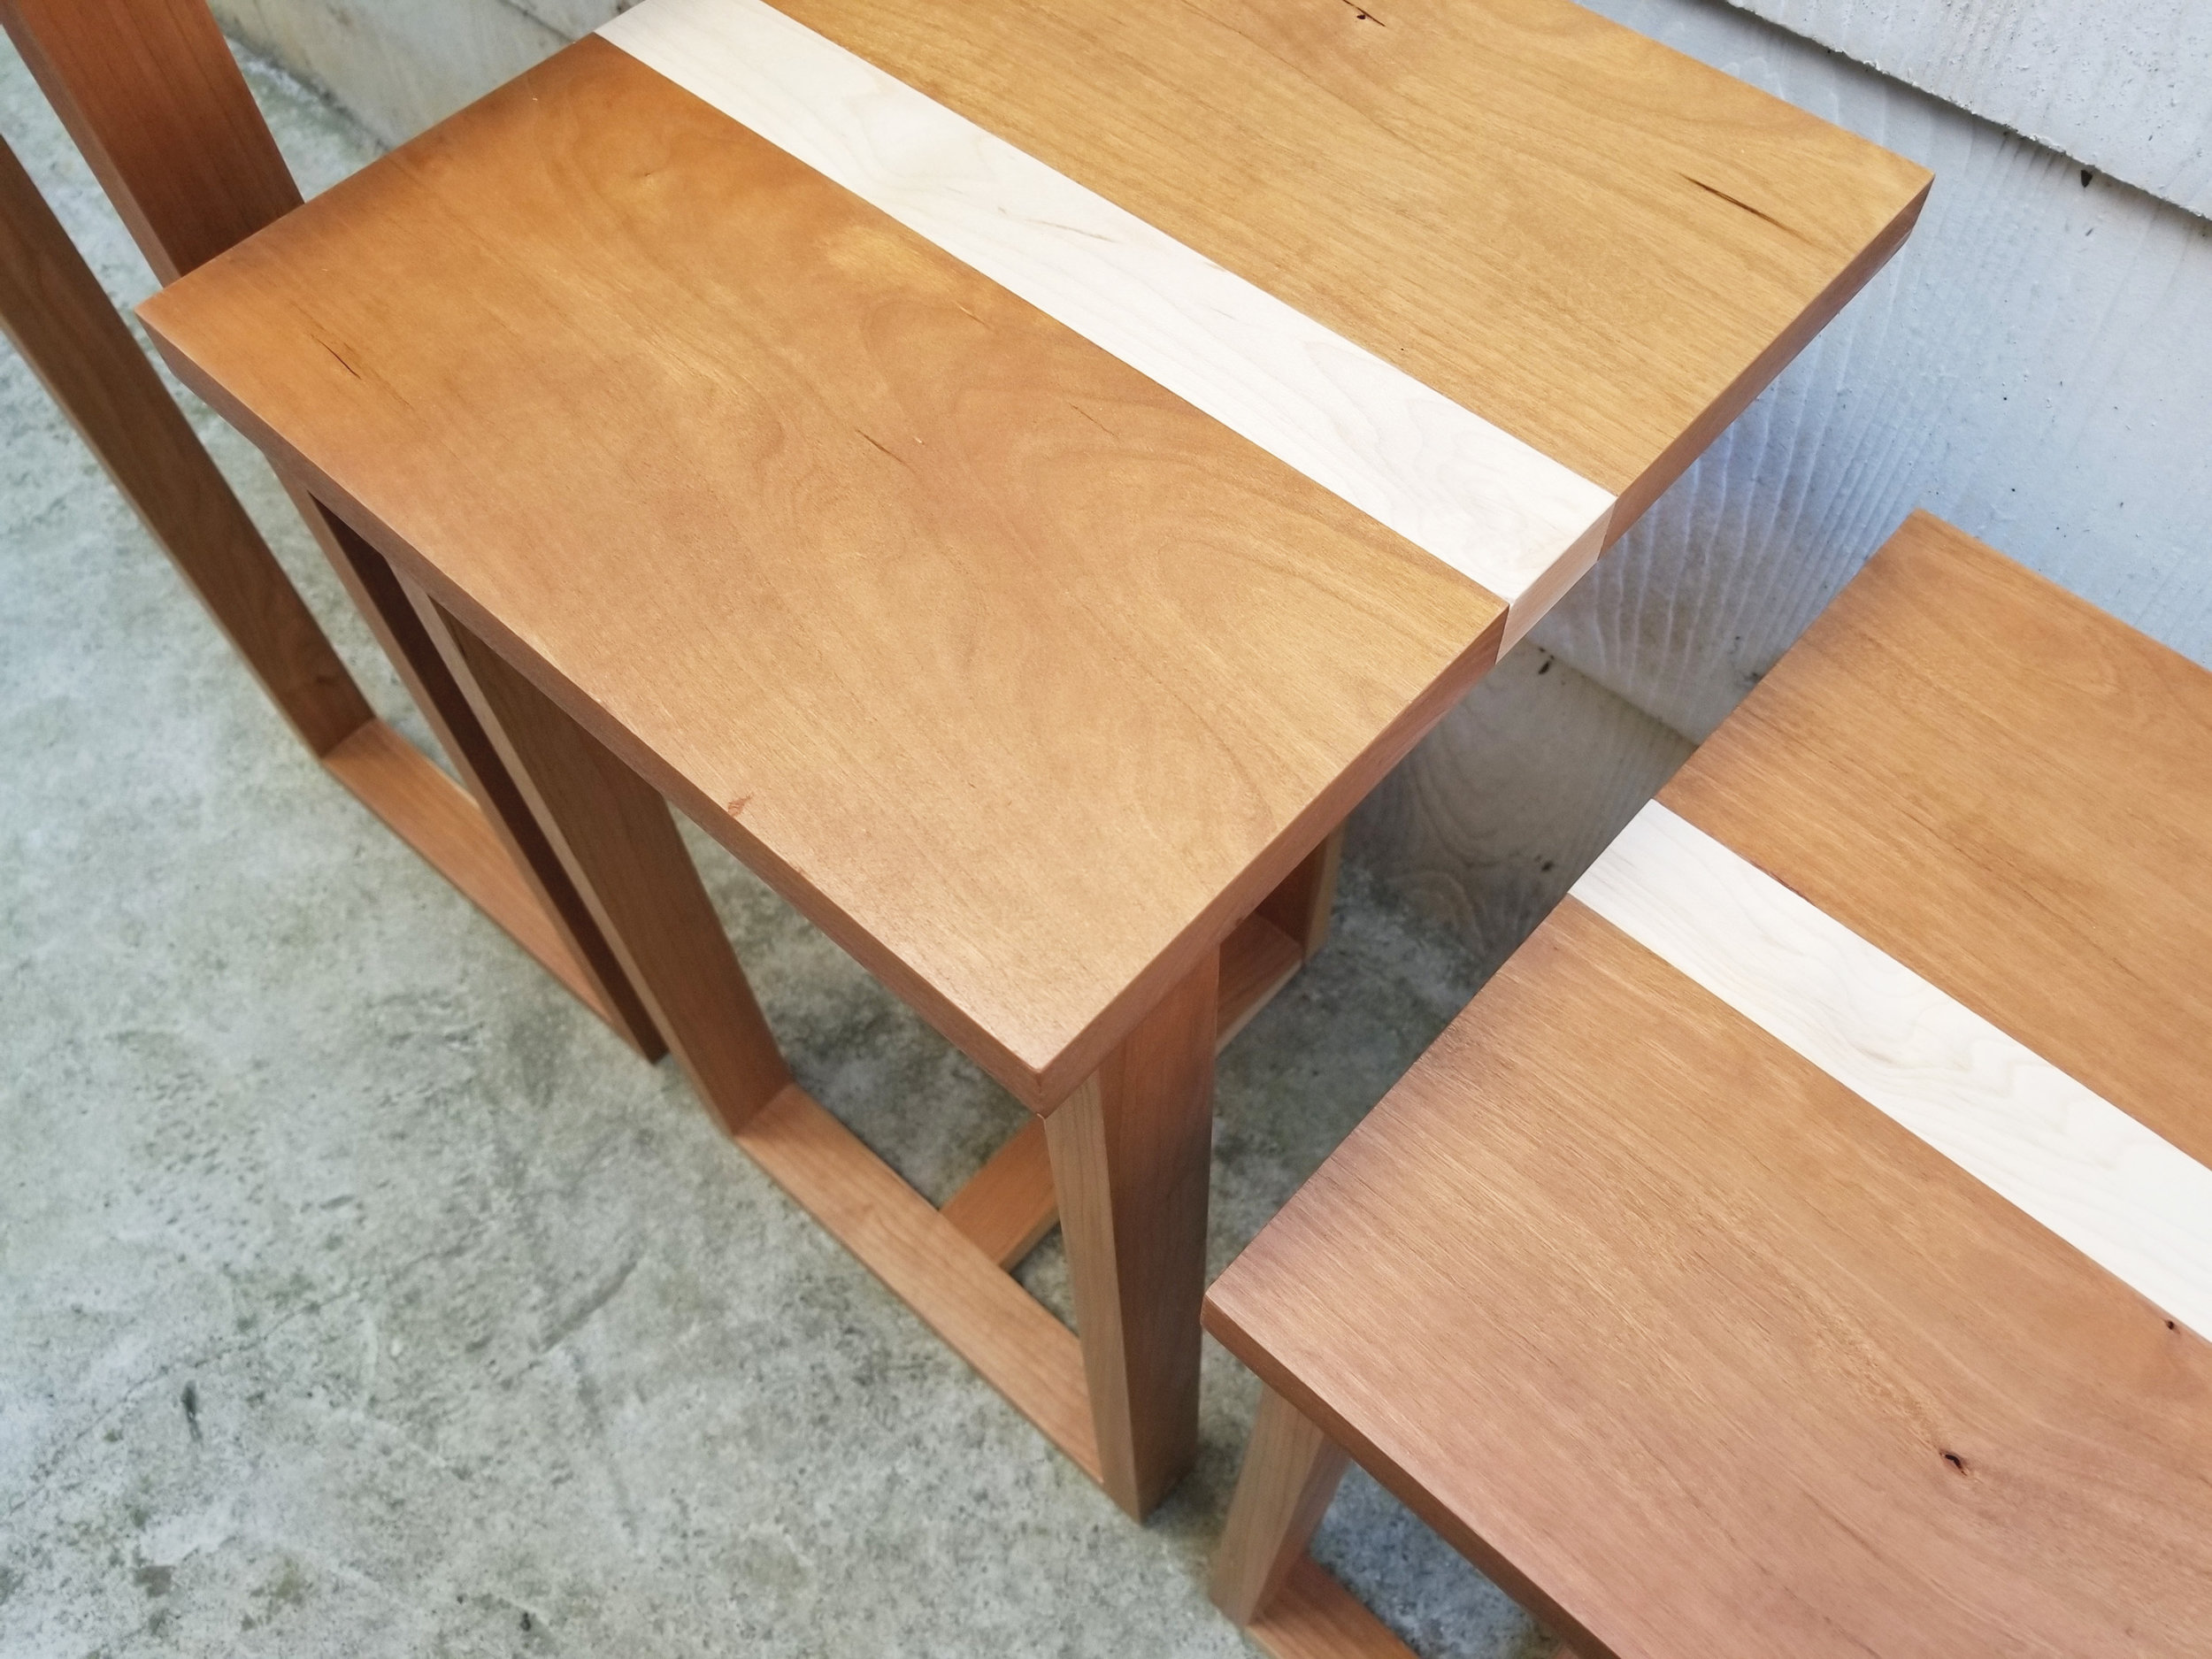 HAWTHORNE PLANT STANDS - IN SOLID CHERRY